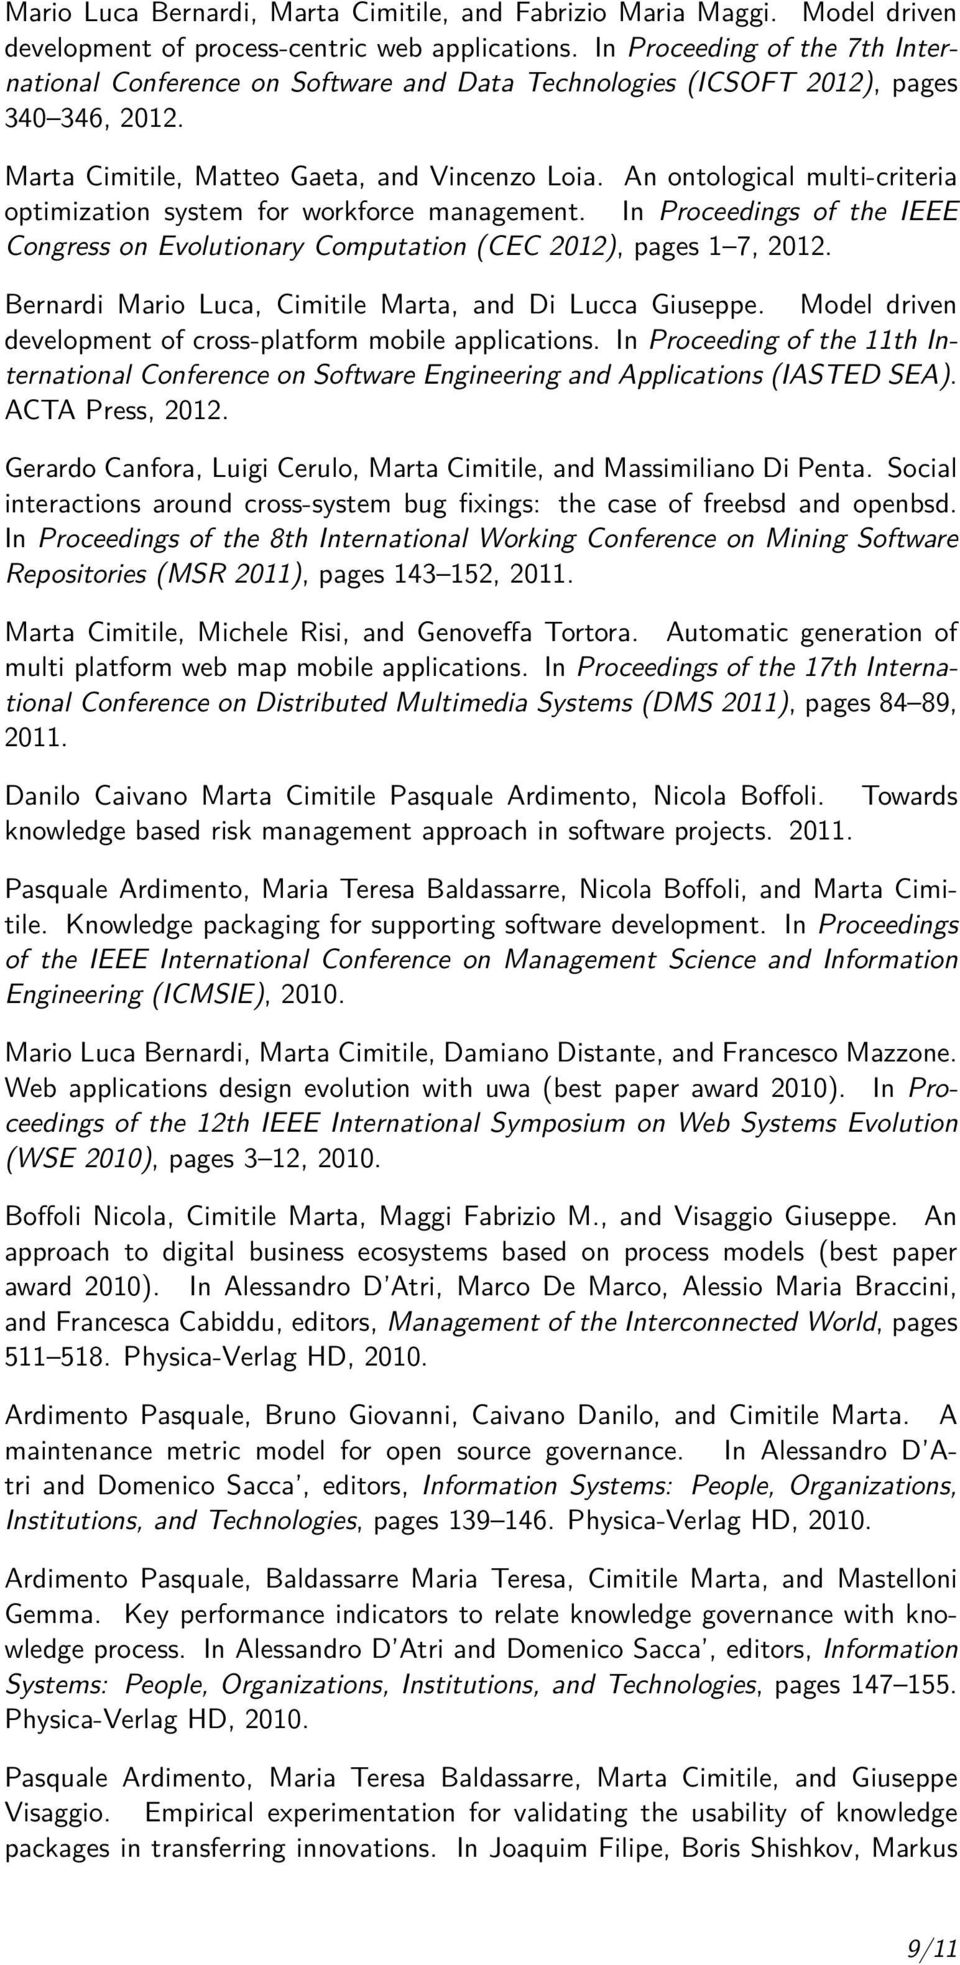 An ontological multi-criteria optimization system for workforce management. In Proceedings of the IEEE Congress on Evolutionary Computation (CEC 2012), pages 1 7, 2012.